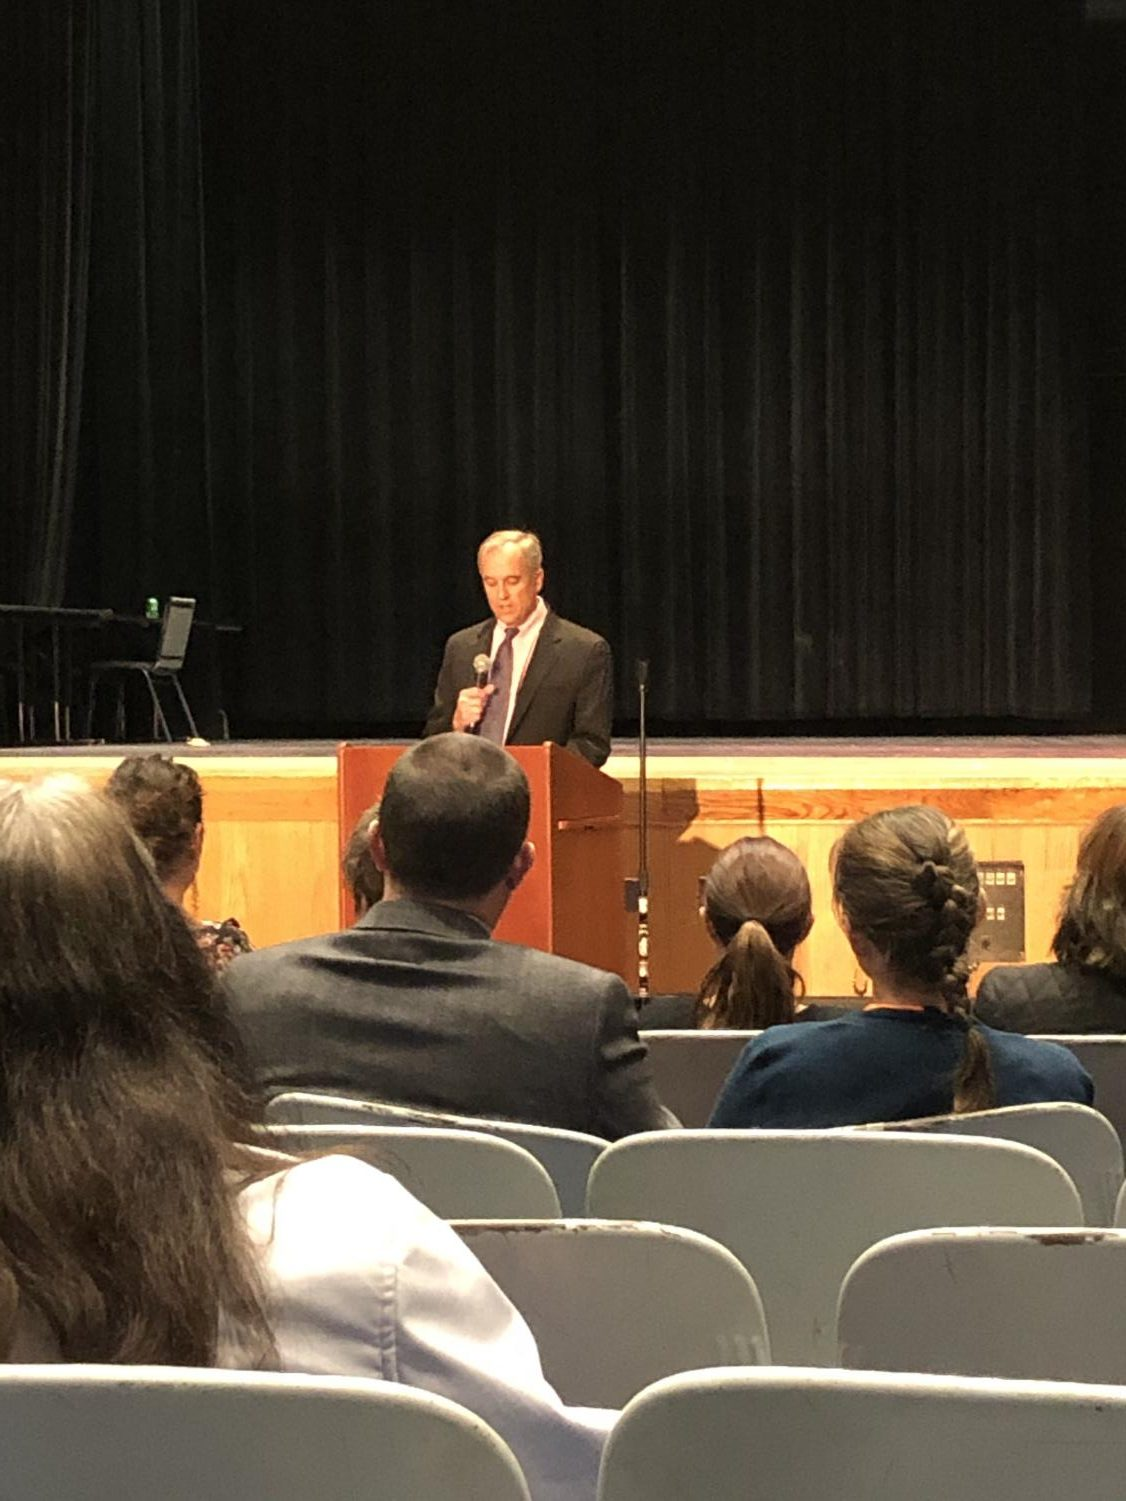 NEASC Committee member Scott Leslie gives initial recommendations to the DHS staff on Wednesday, Nov. 20 during concluding ceremonies.